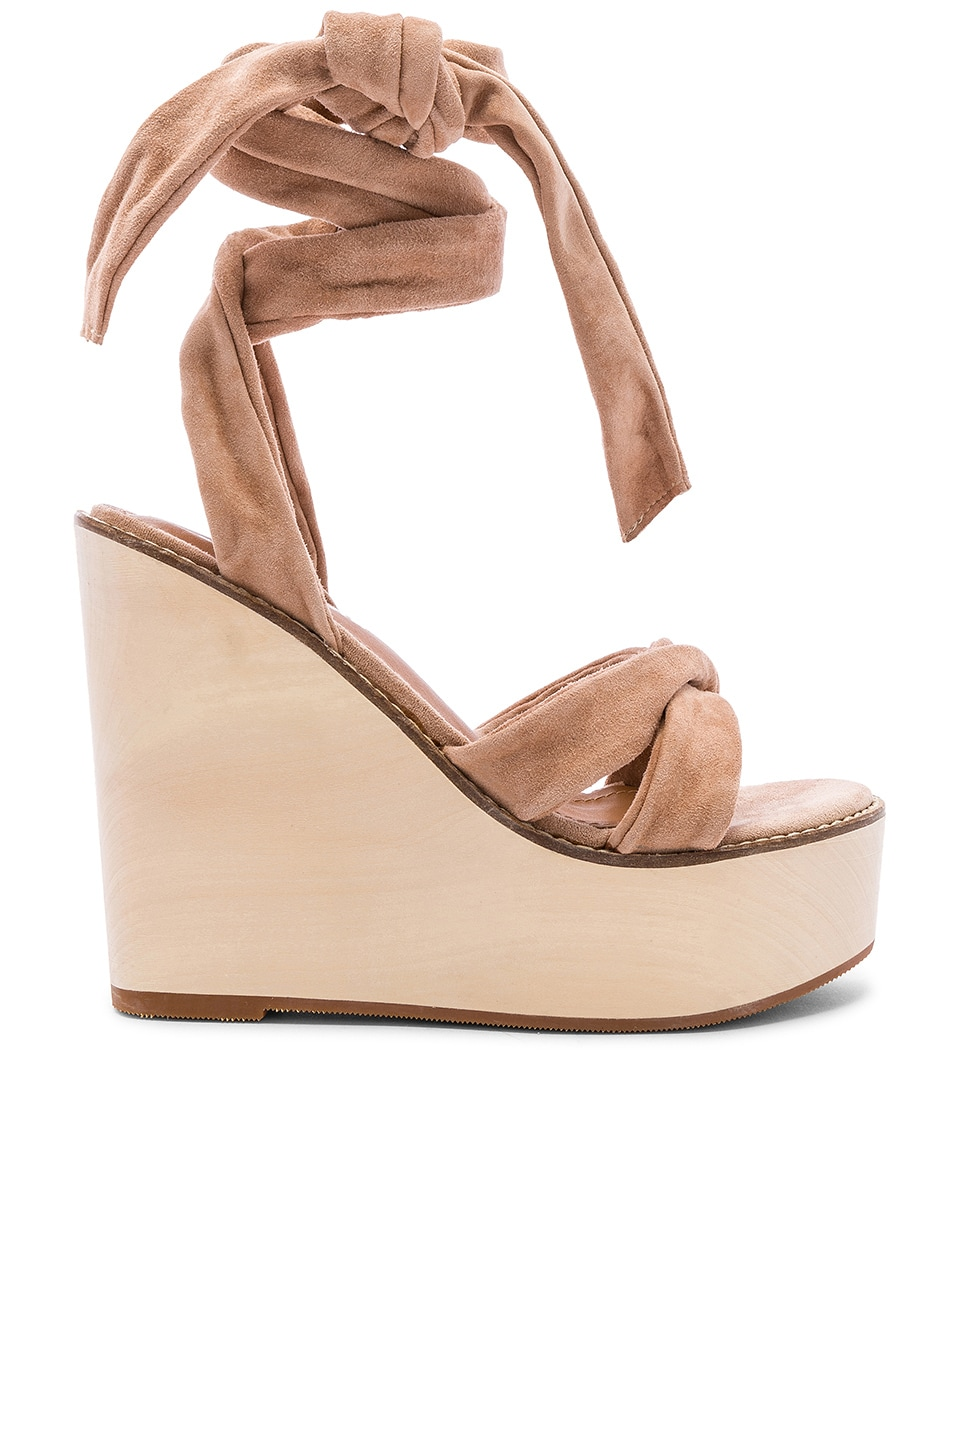 Alias Mae Kendra Wedge in Blush Suede